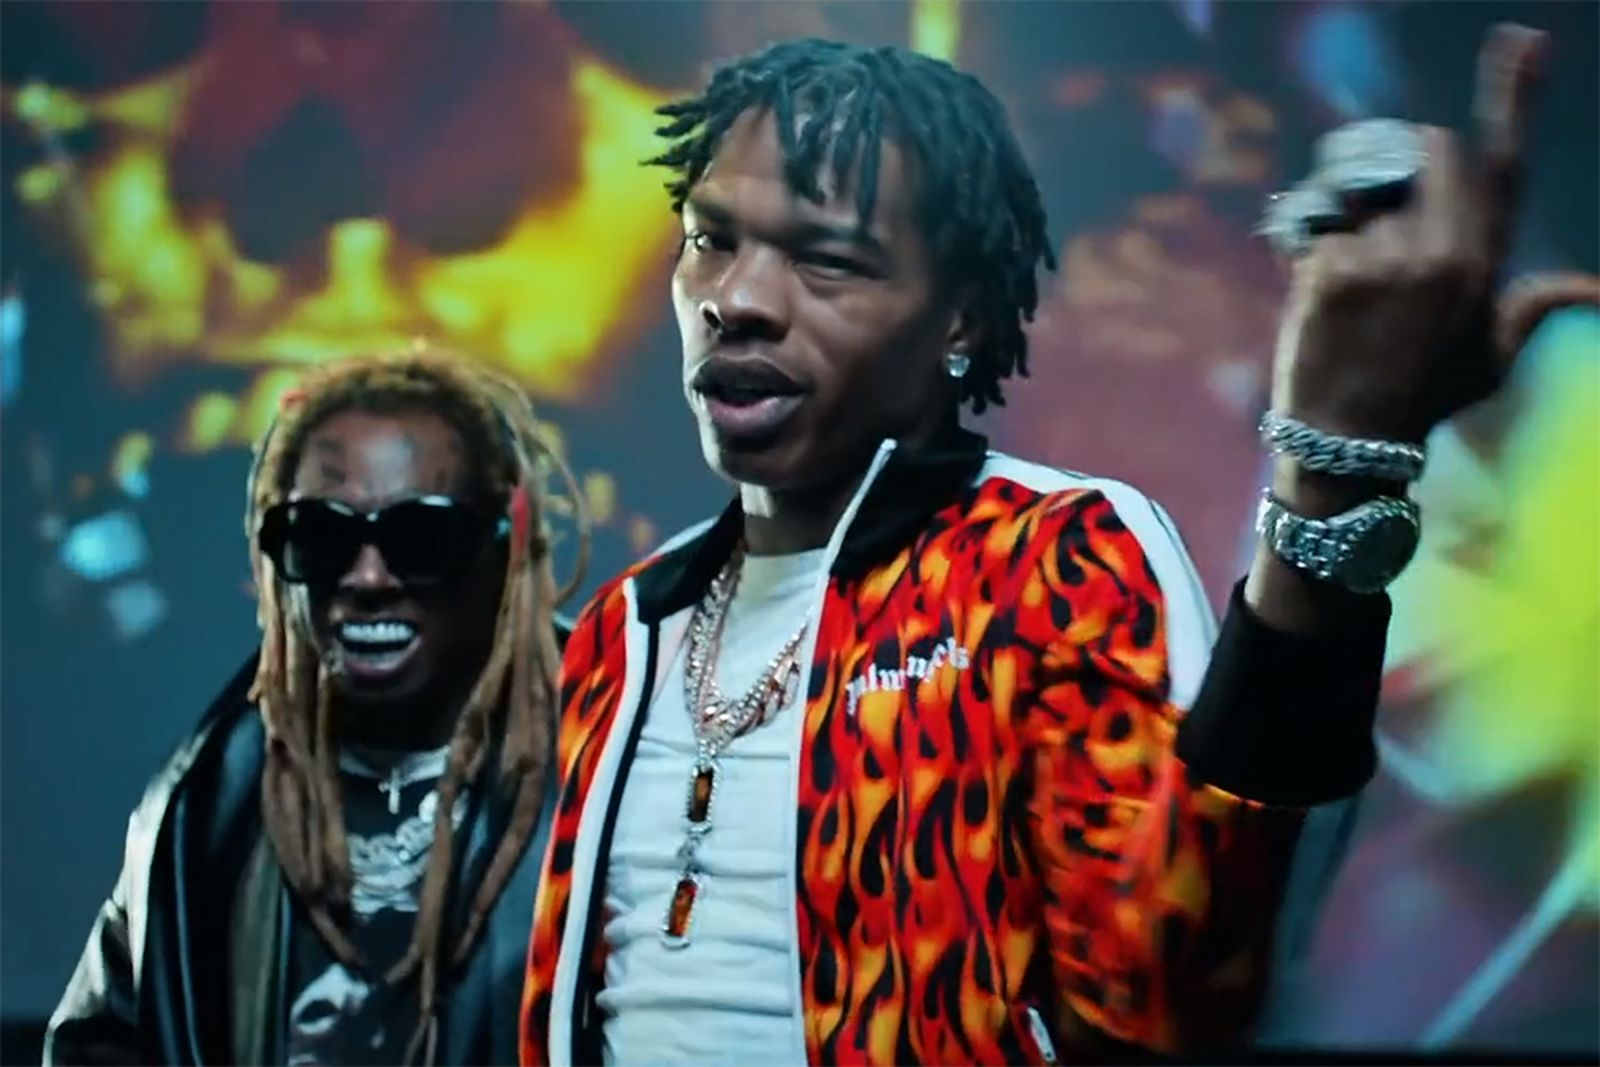 Lil Baby Lil Wayne Forever Music Video